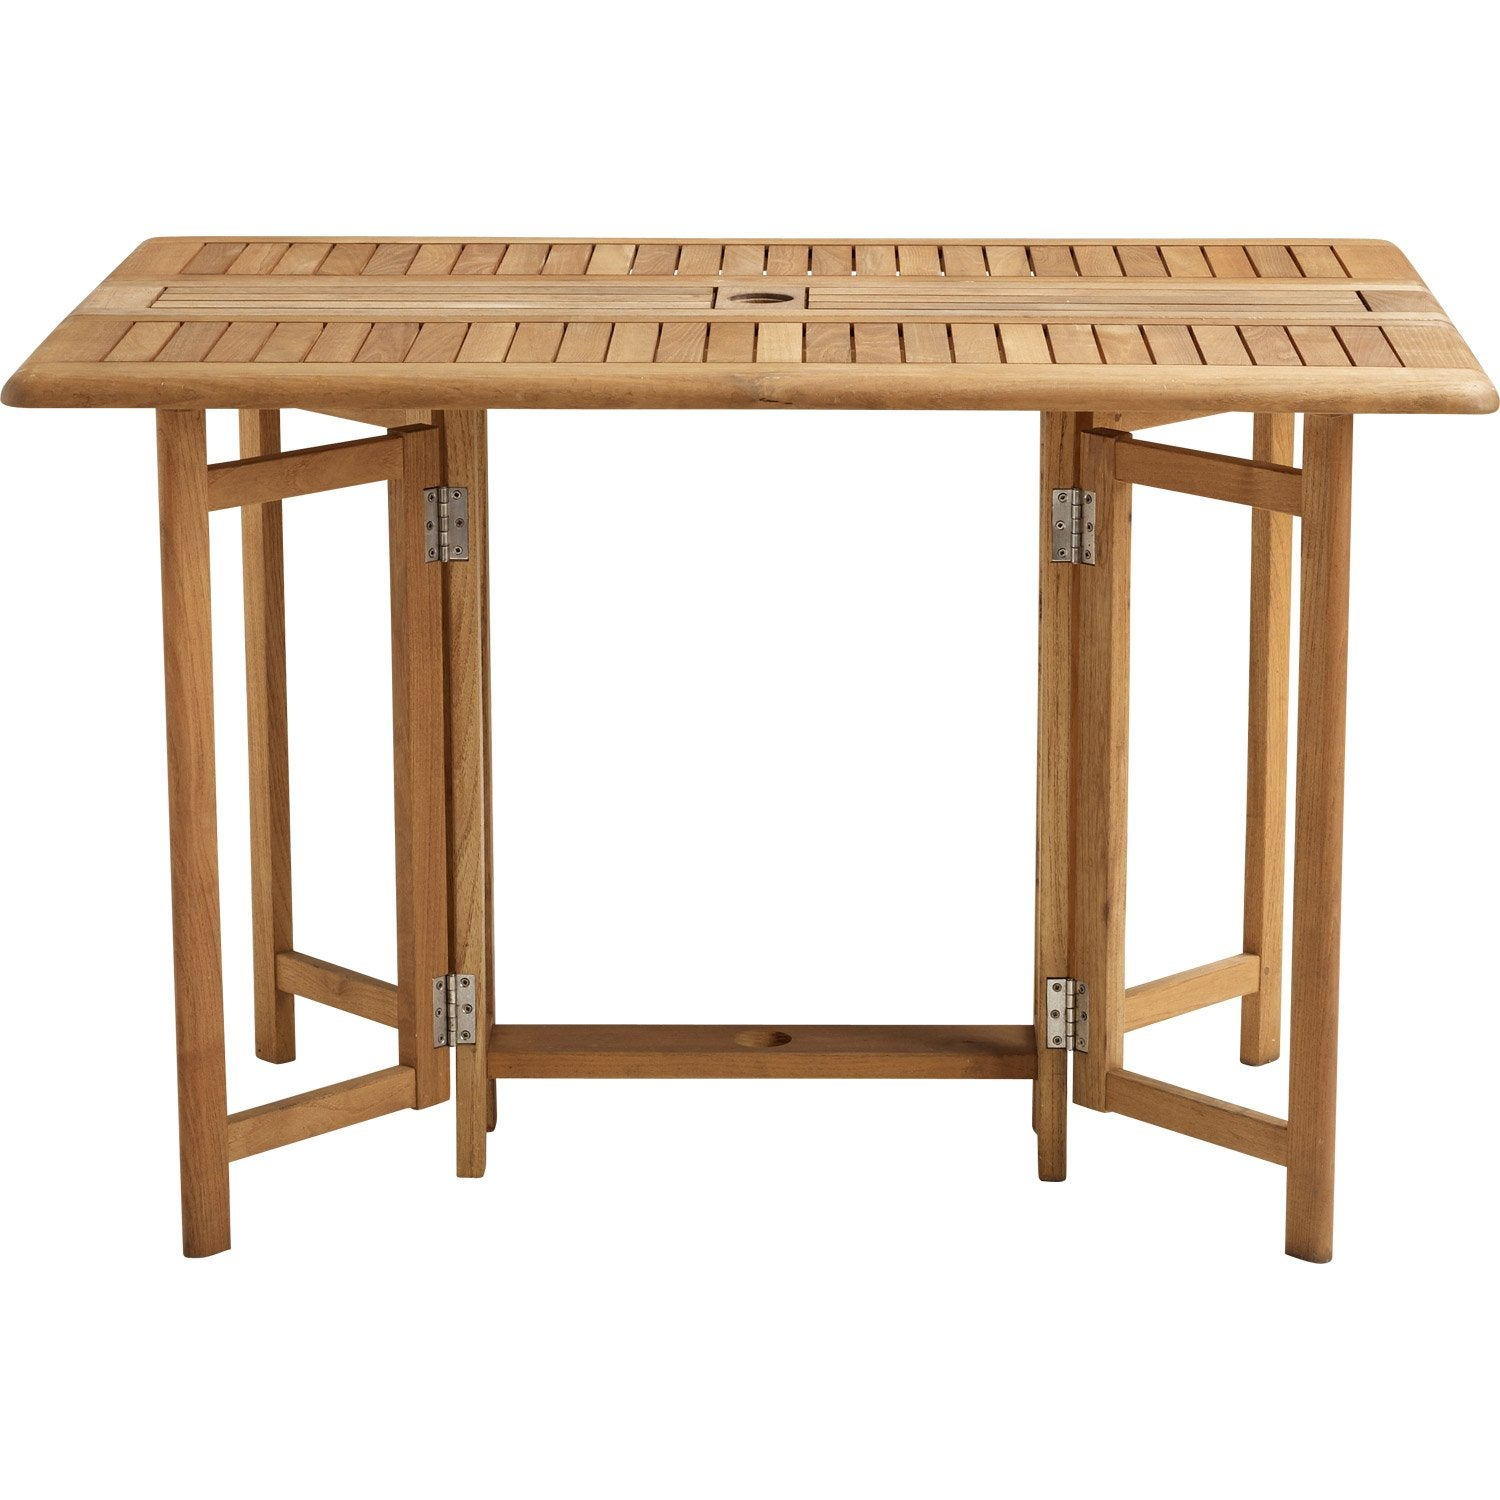 Table de jardin naterial robin rectangulaire miel 6 personnes leroy merlin - Leroy merlin table pliante ...